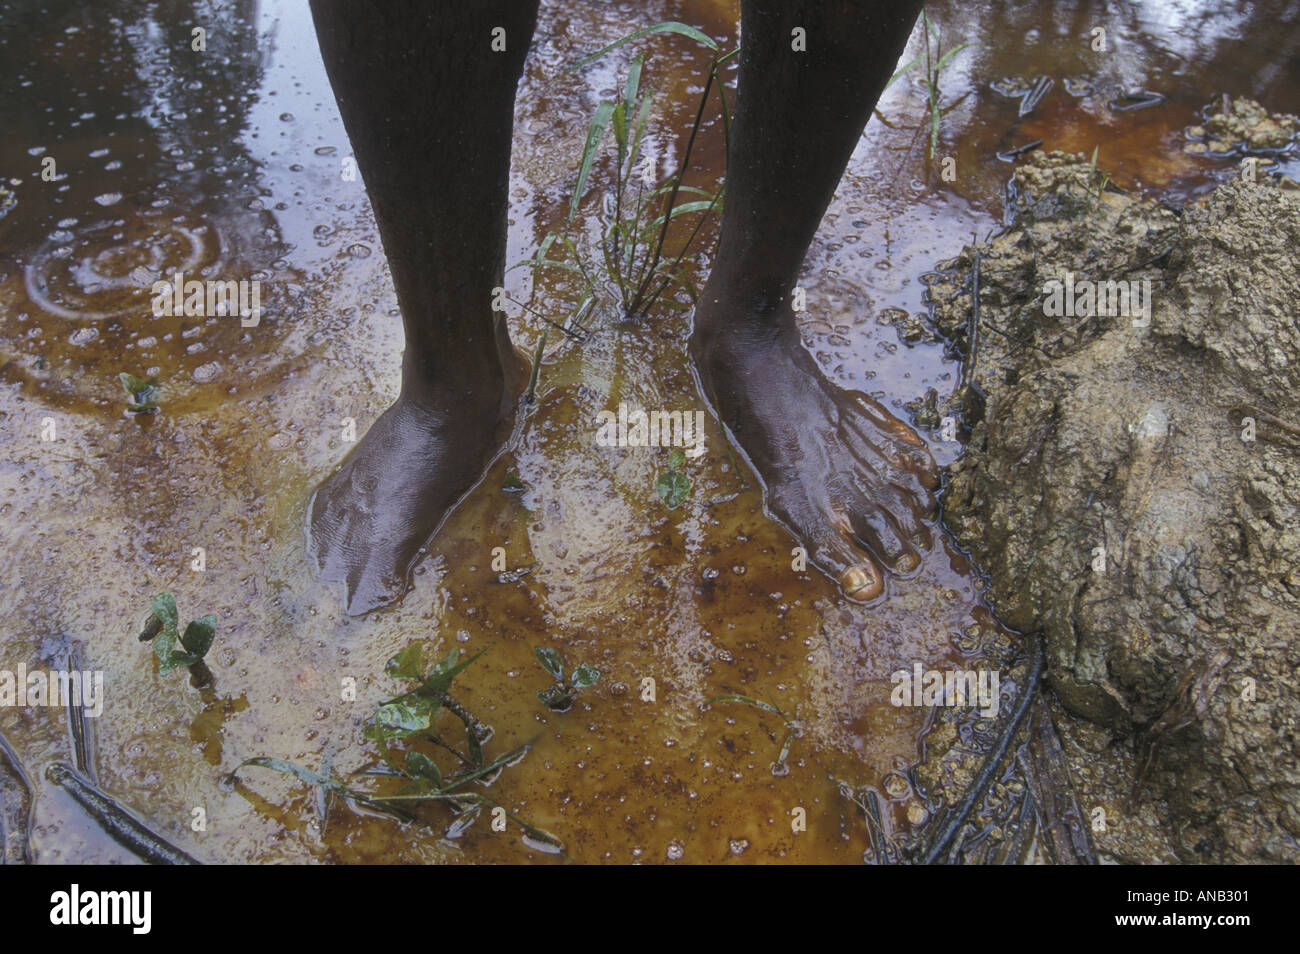 Oil spill in Niger delta forest, Nigeria - Stock Image